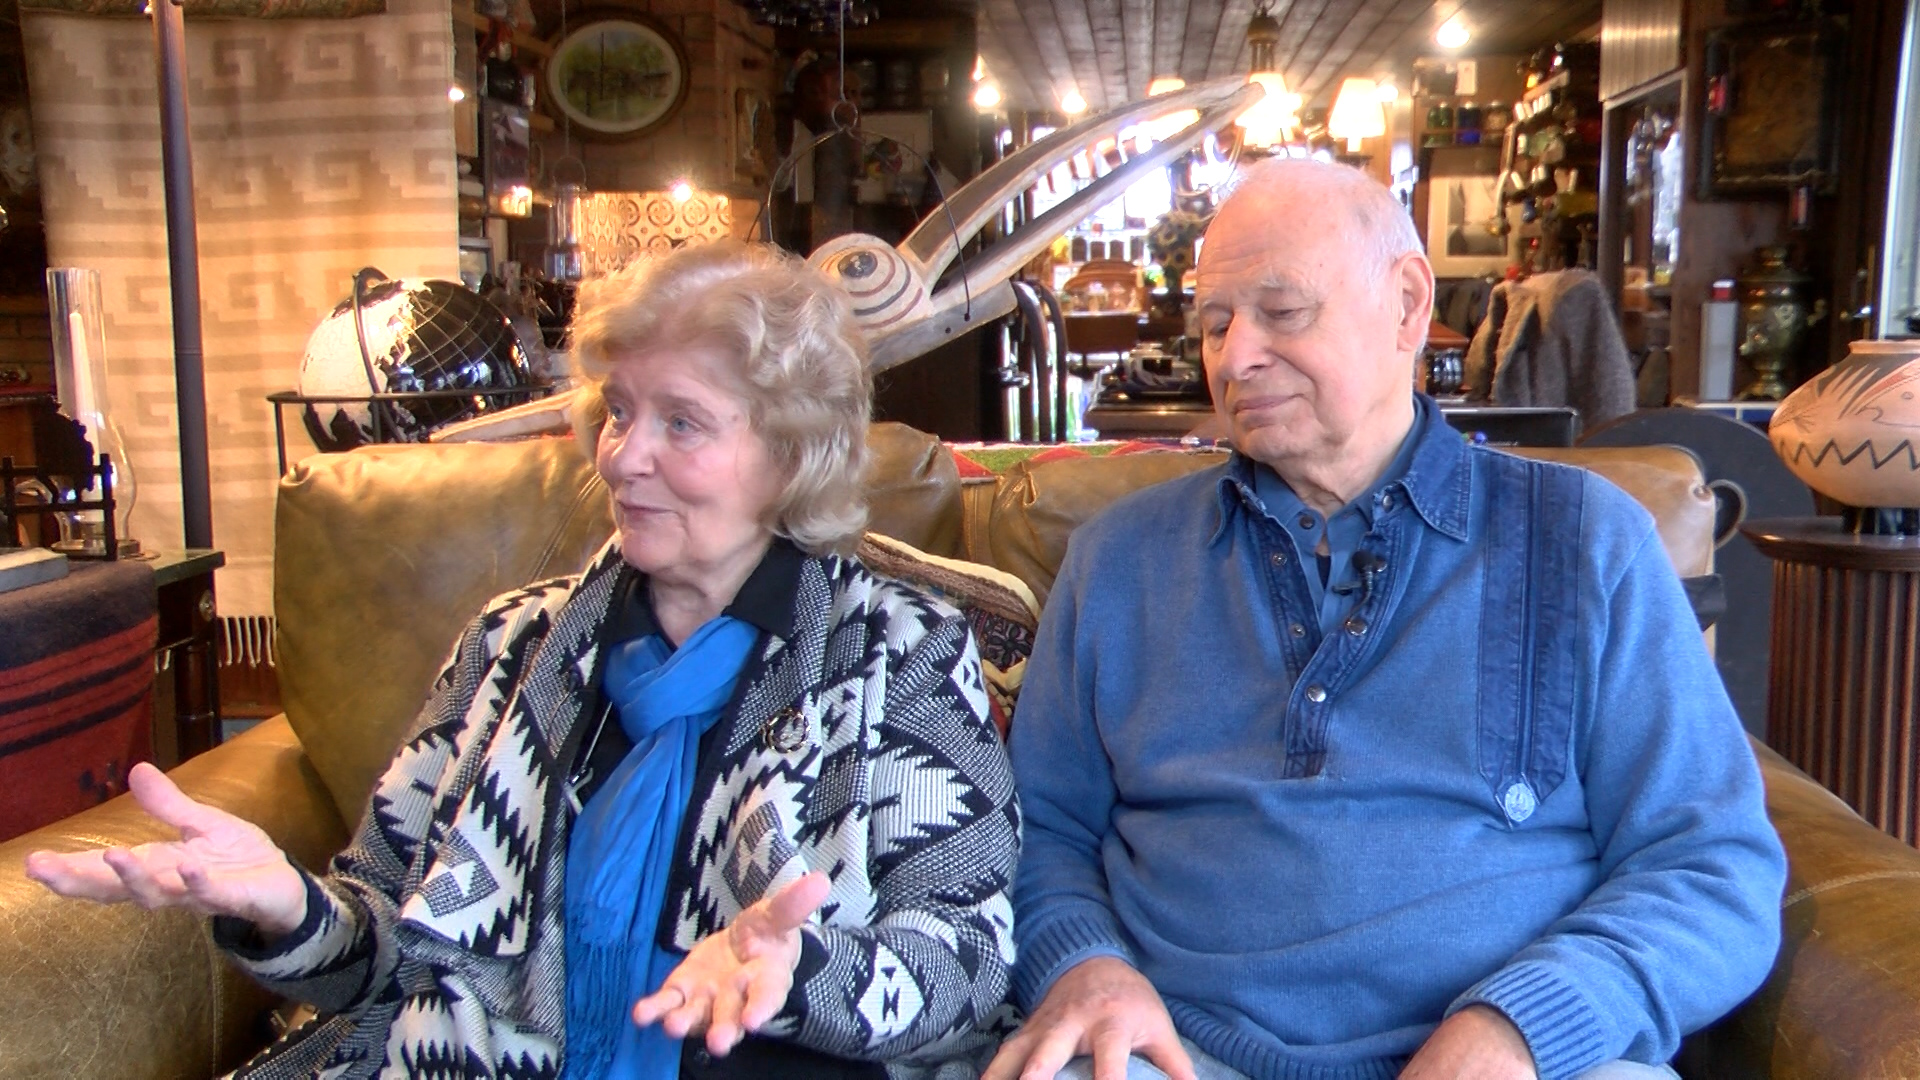 Goodfield couple_1542309171305.jpg.jpg